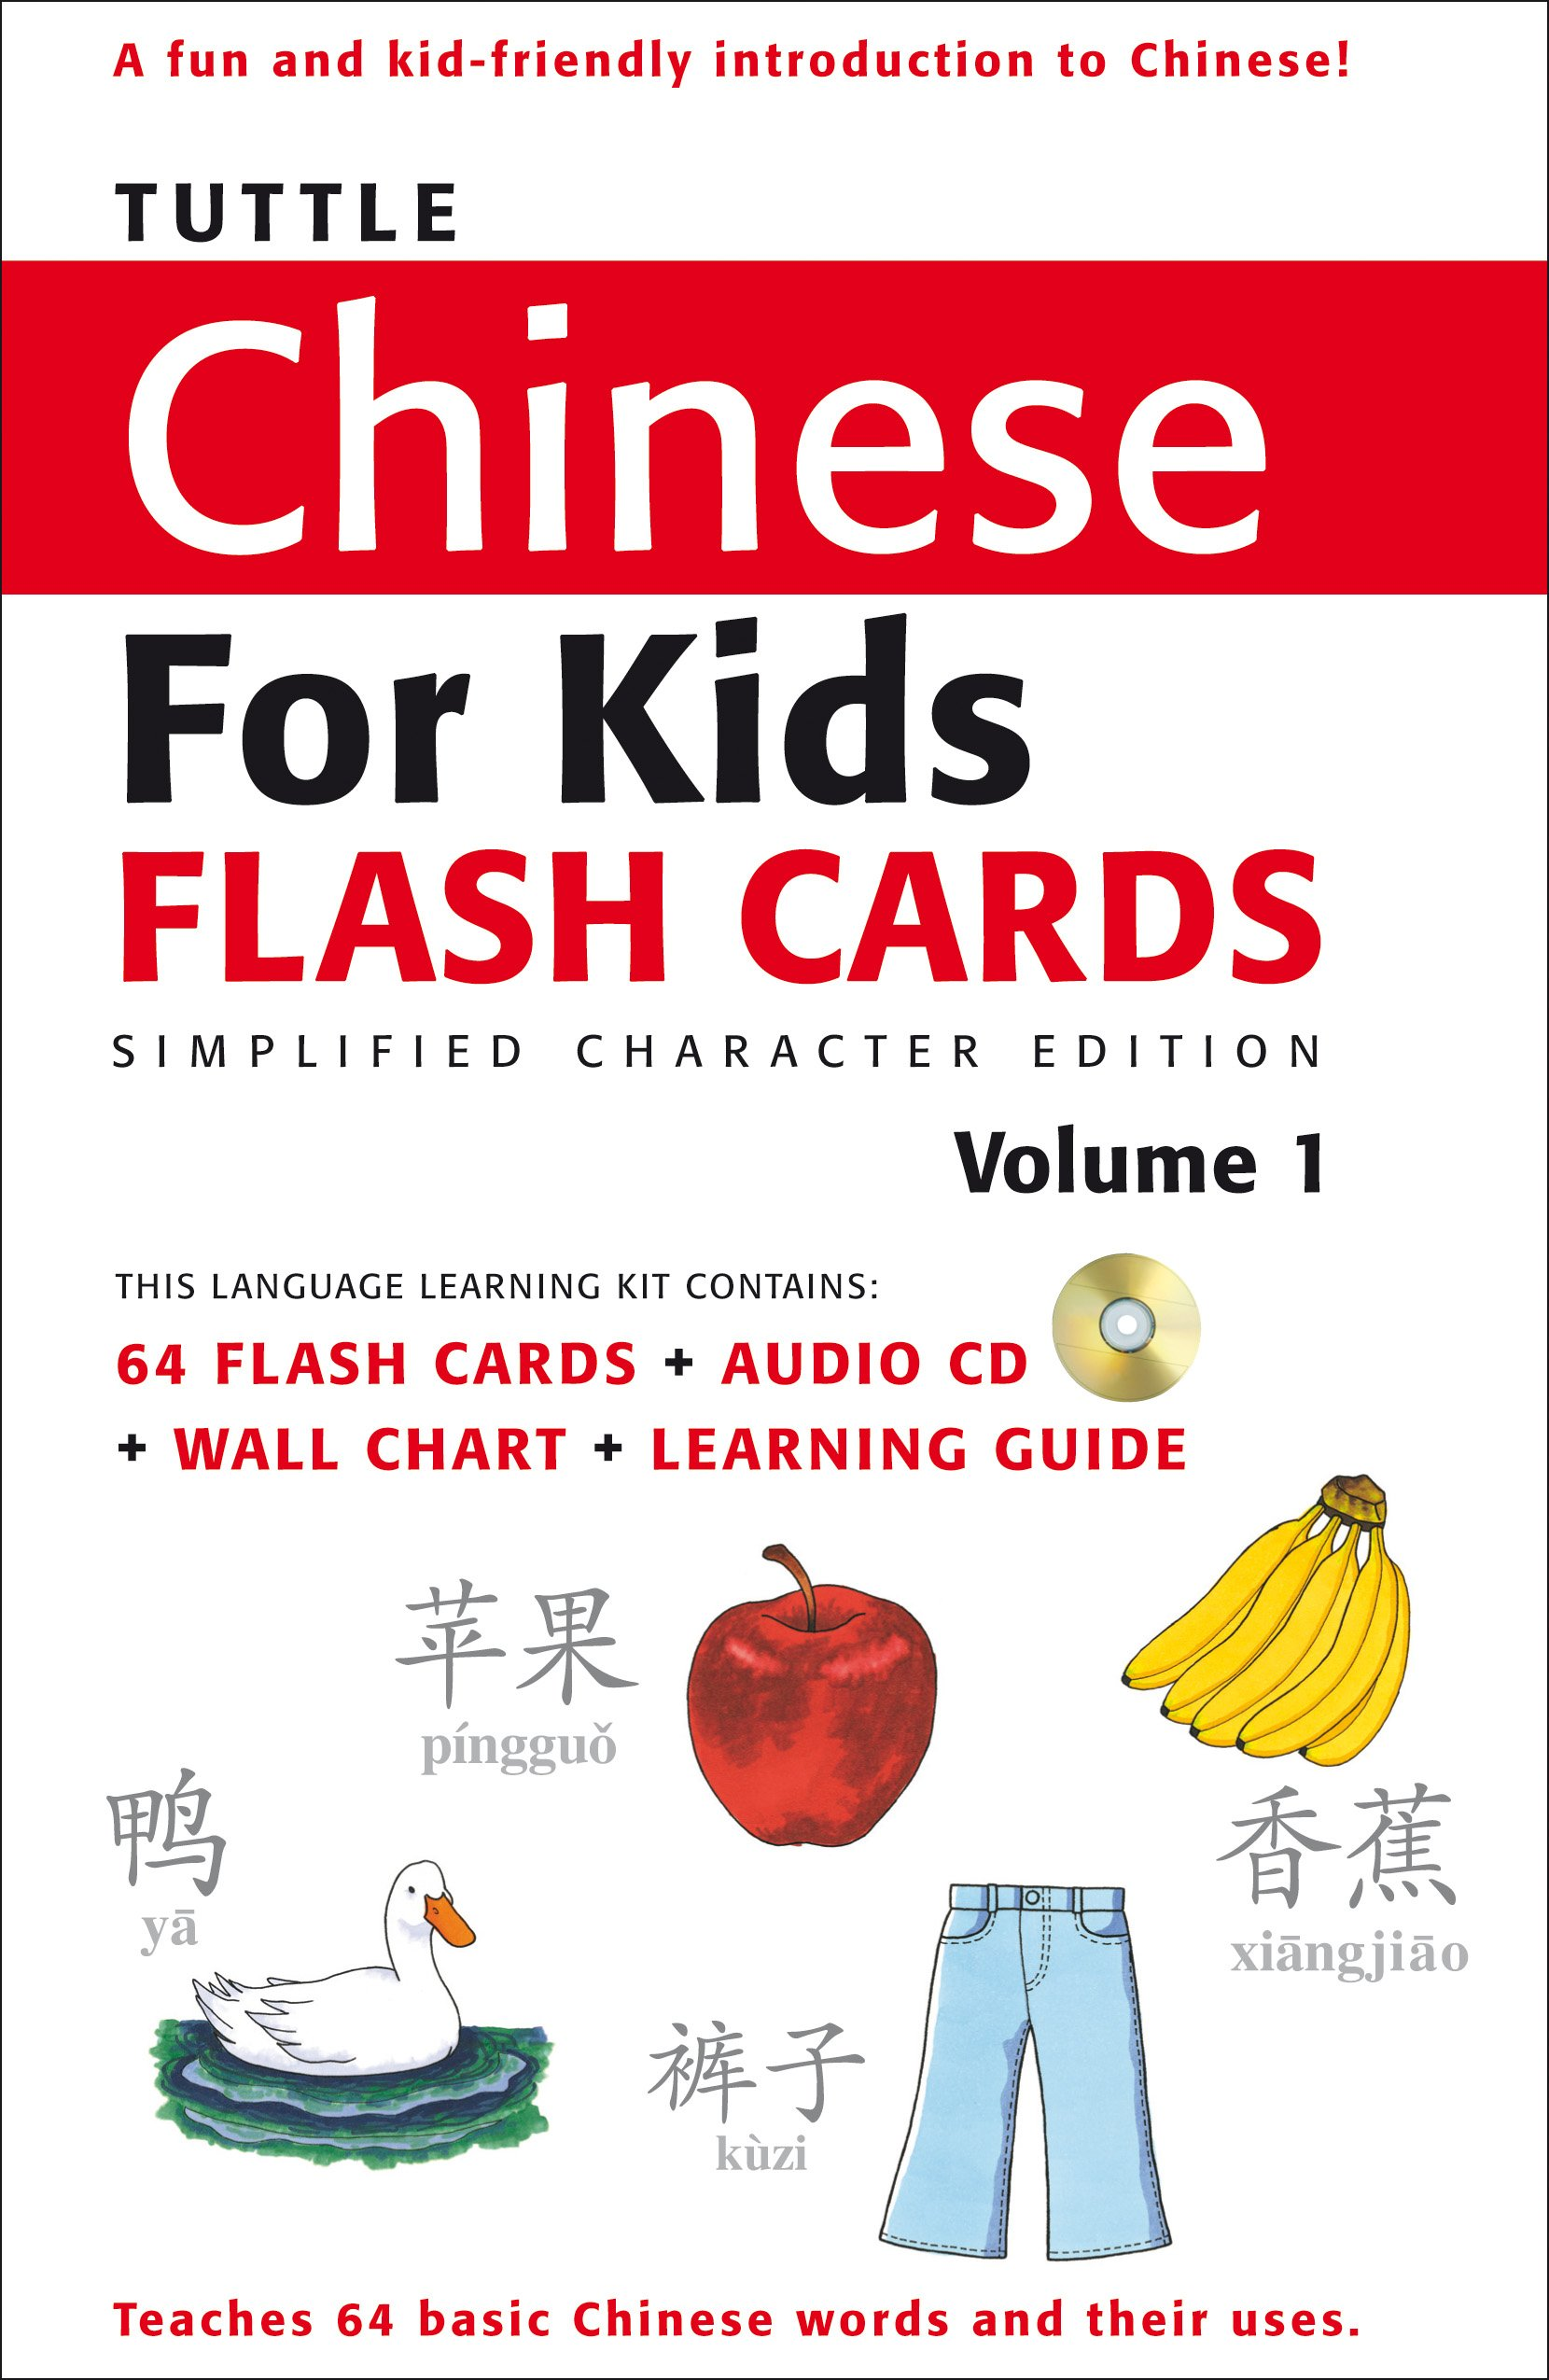 Tuttle Chinese for Kids Flash Cards Kit Vol 1 Simplified Ed: Simplified Characters [Includes 64 Flash Cards, Audio CD, Wall Chart & Learning Guide] (Tuttle Flash Cards) (v. 1)